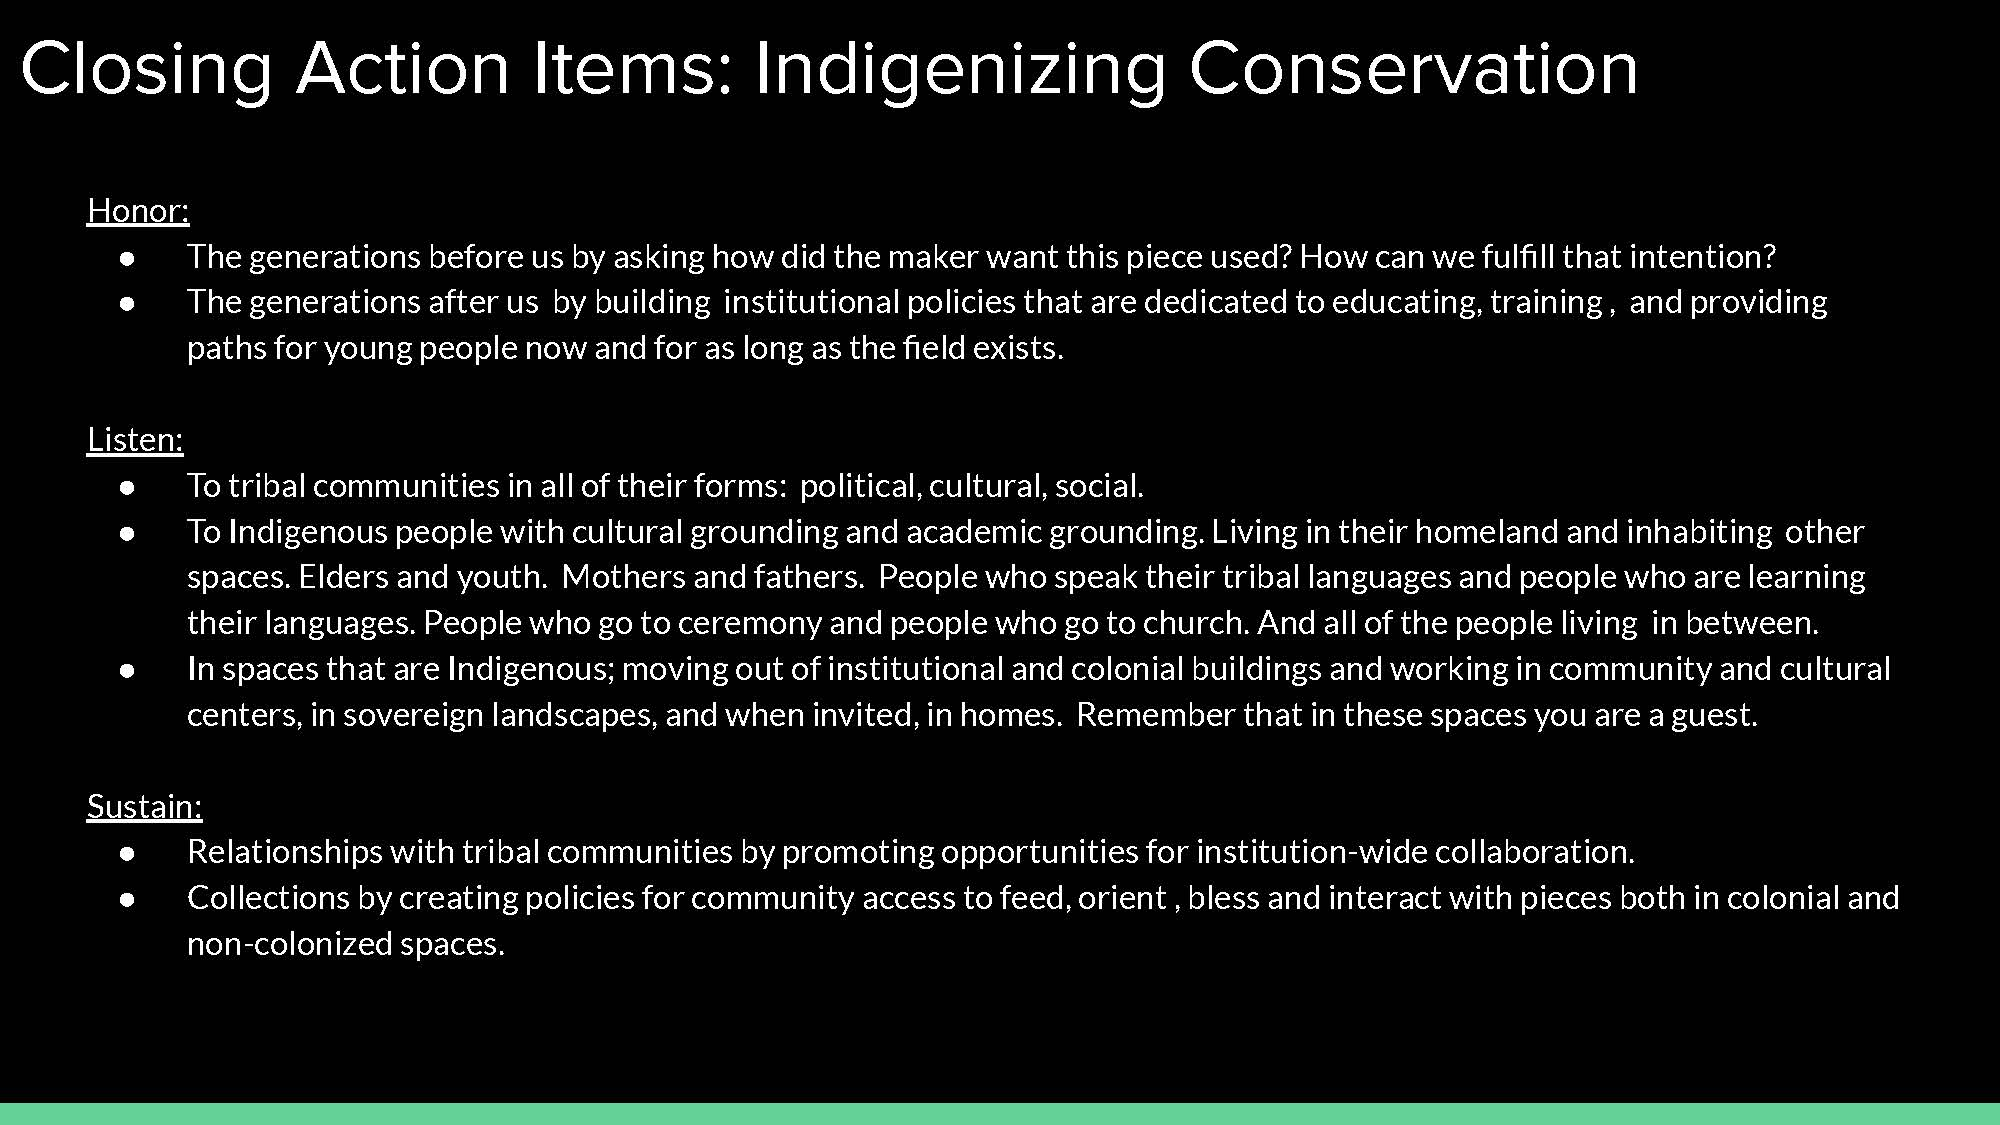 Untold Stories 2019_ Indigenous Futures and Collaborative Conservation_Page_32.jpg